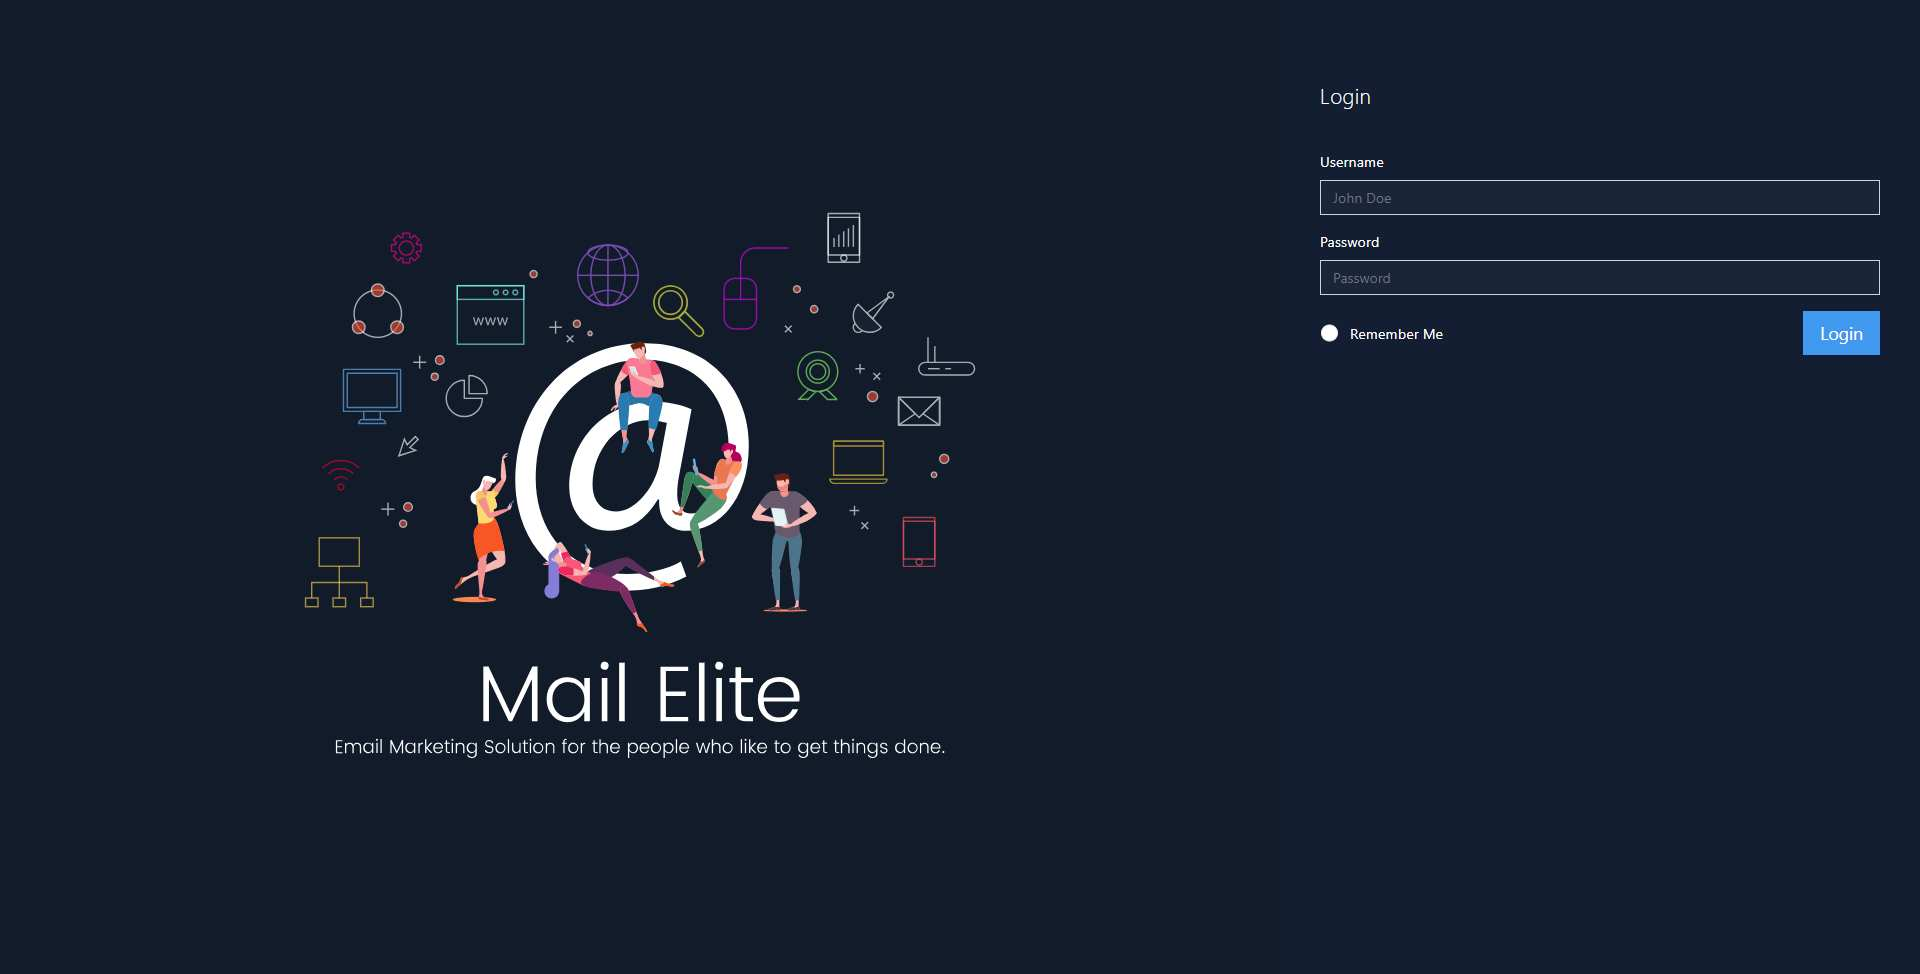 MailElite Review